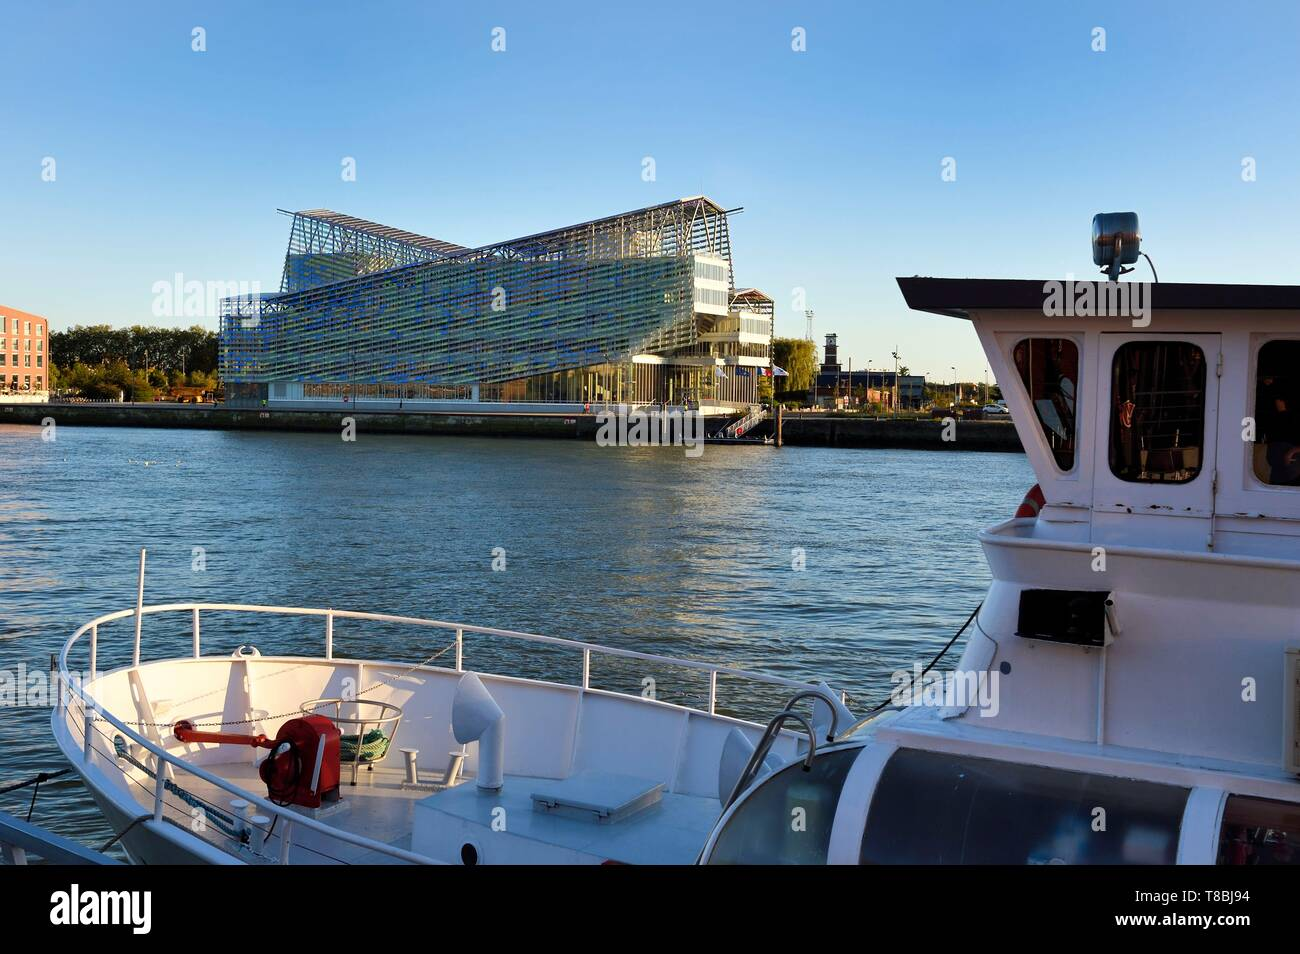 France, Seine Maritime, Rouen, headquarter of the Rouen Normandie Metropolis, an intercommunal structure centred on the city of Rouen - Stock Image